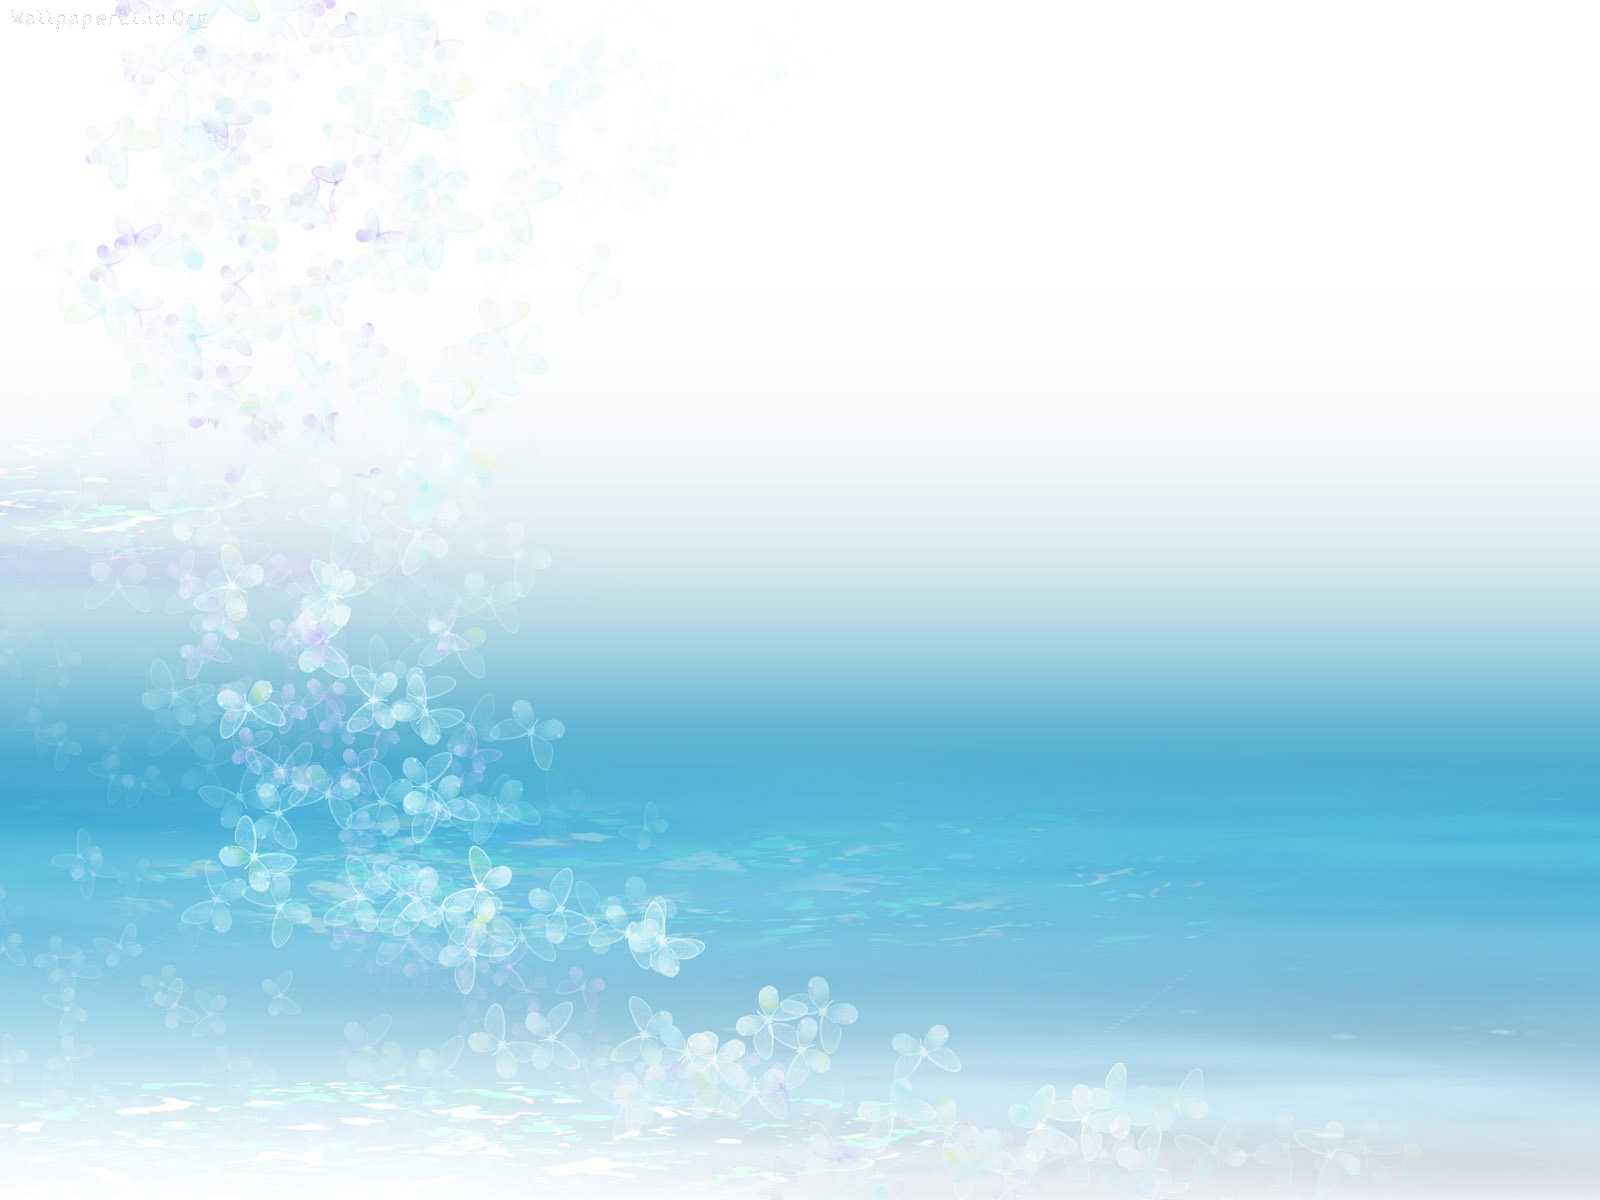 Free wallpapers by valdazzar 4 plain backgrounds 1 for Plain wallpaper